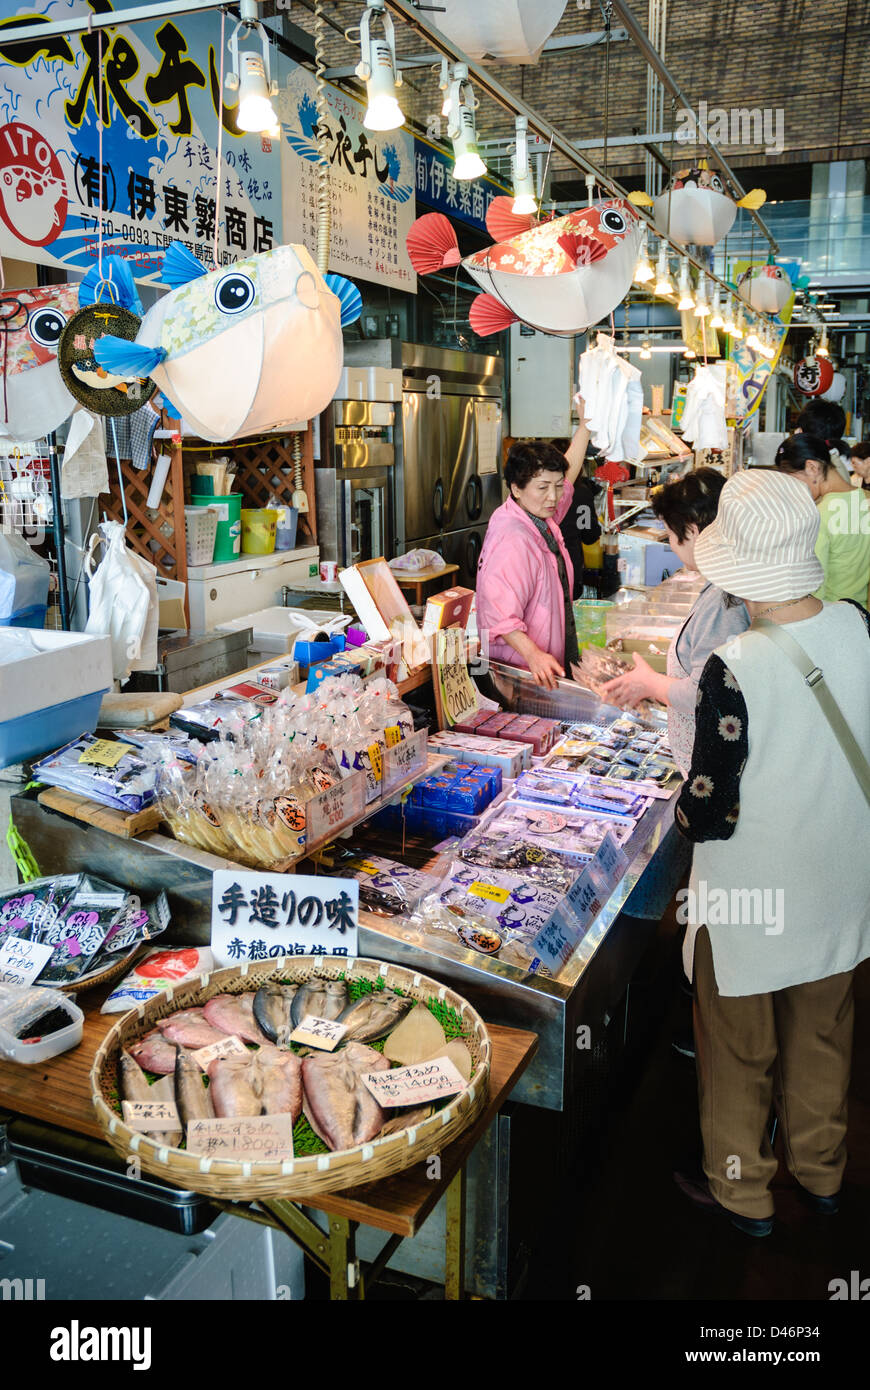 Poisonous fugu (puffer fish) and other seafood on sale at an indoor seafood market in Japan; Japanese fish market; - Stock Image